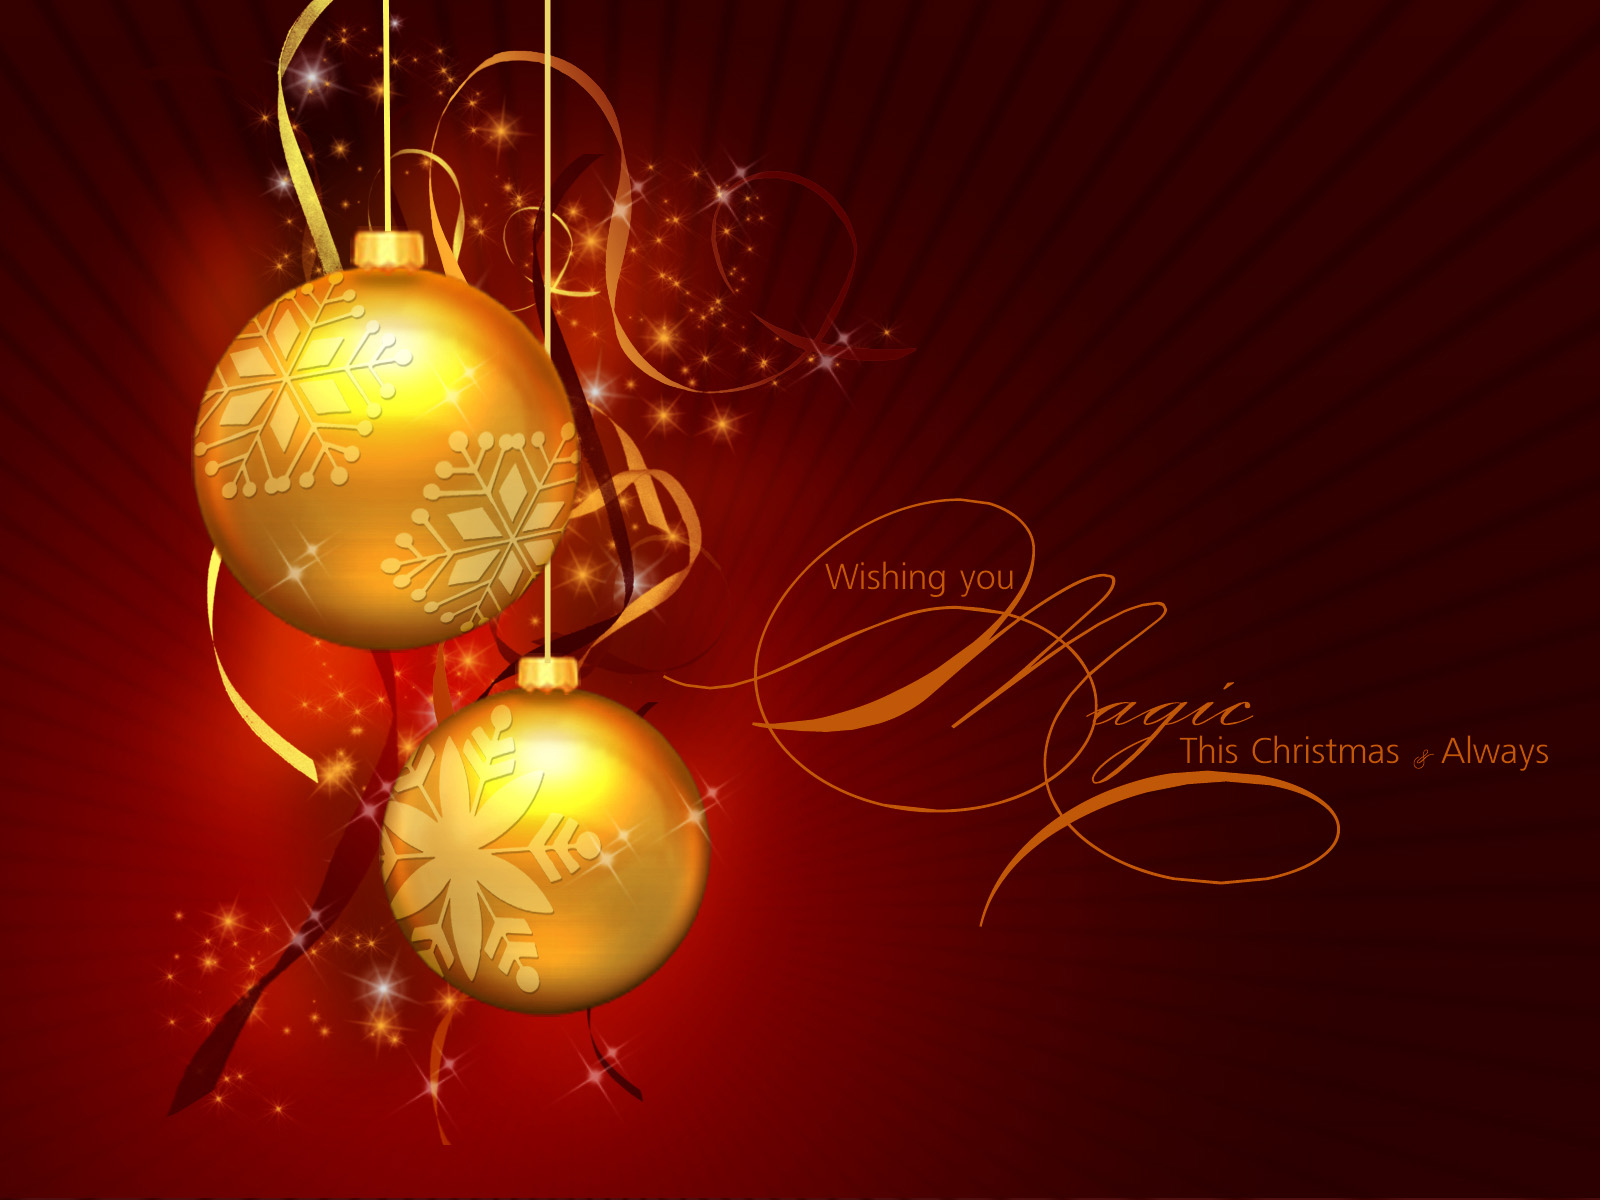 Wishing You A Merry Christmas - Dissertation India